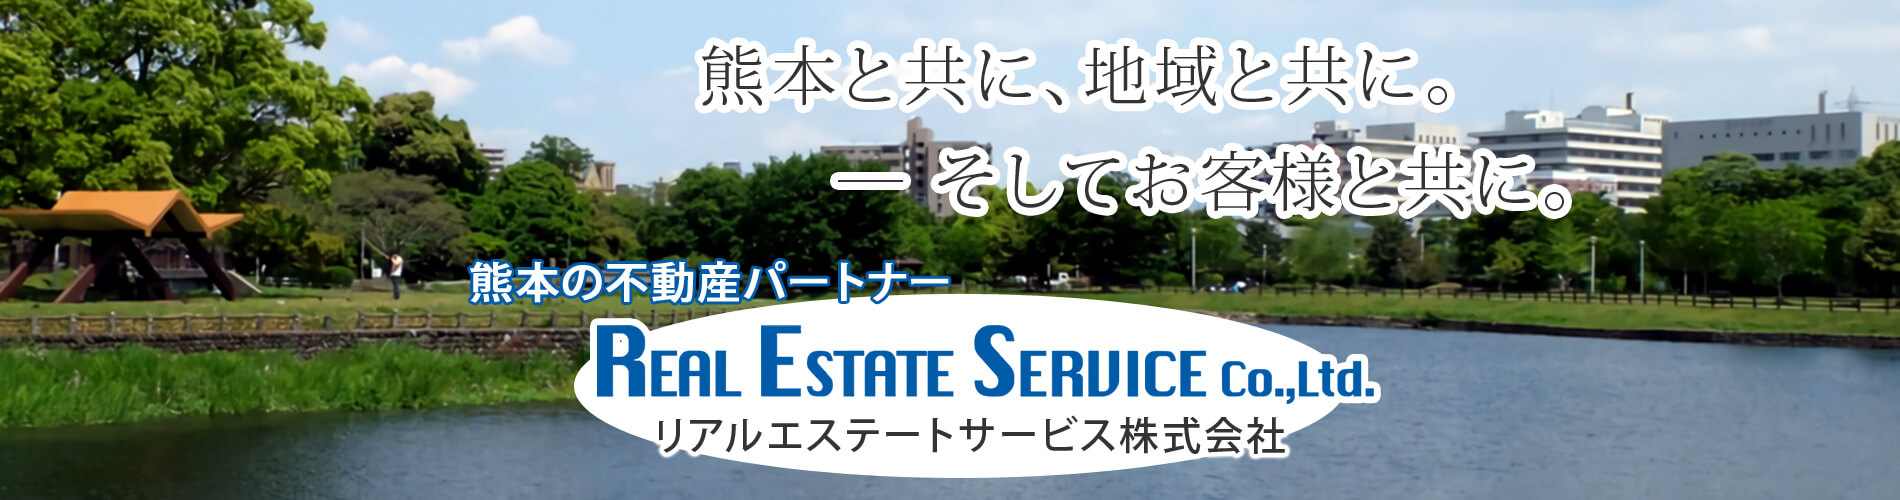 RES | RealEstateService Co., Ltd